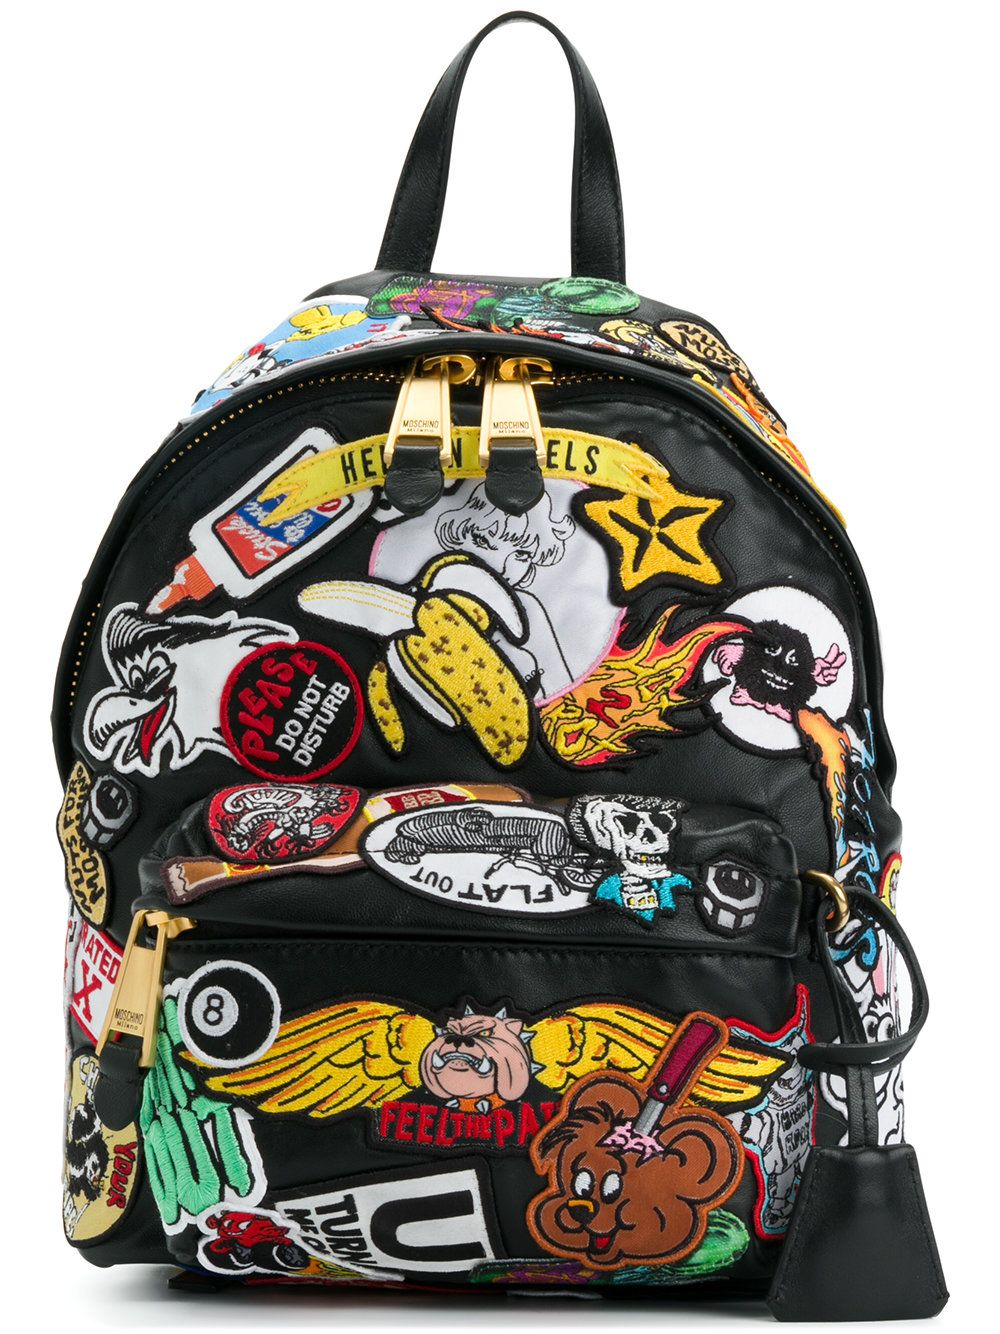 3f52783f7bf Moschino patch embellished backpack Moschino Bag, Designer Backpacks, Cool  Backpacks, Patched Backpack,